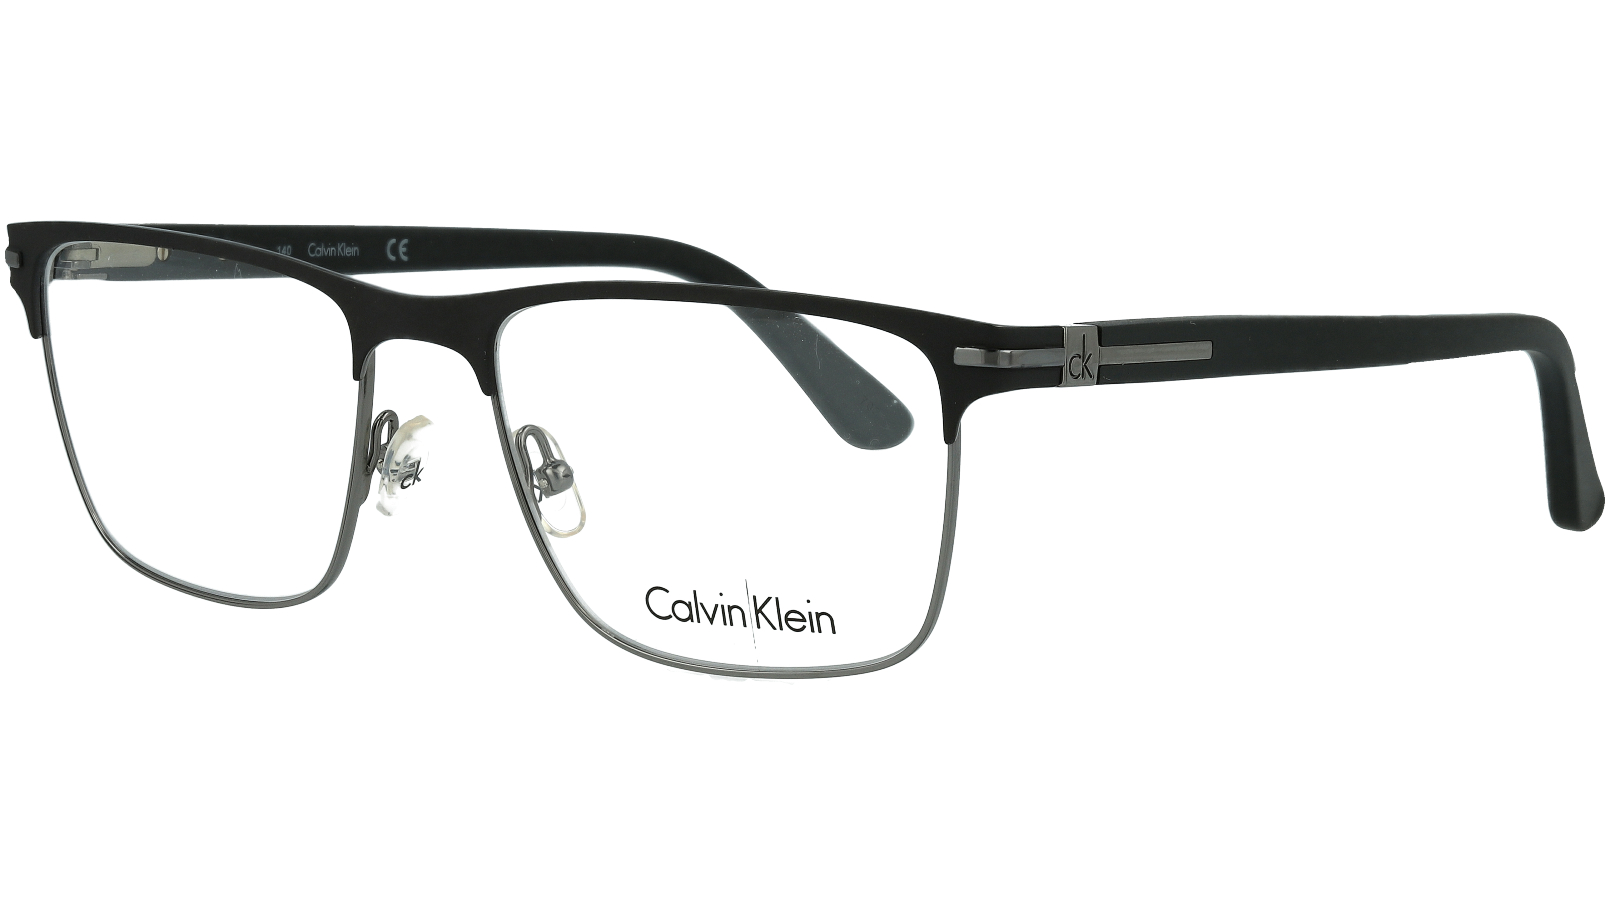 CALVIN KLEIN CK5427 001 53 BLACK Glasses